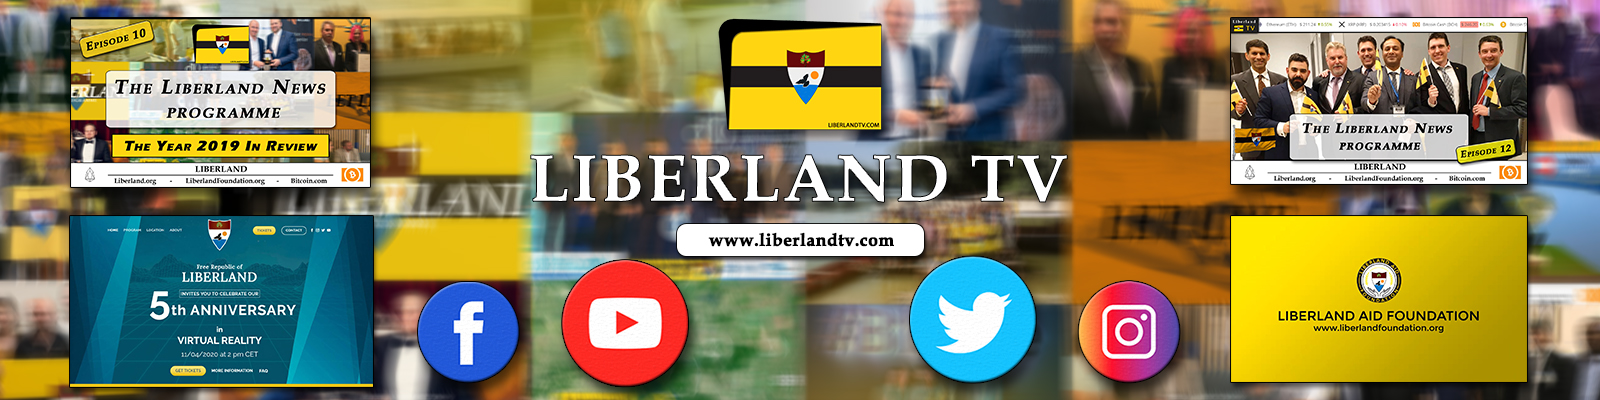 Tlo Become a patron Liberland TV on patreon libertarianism liberty blockchain bitcoin donate